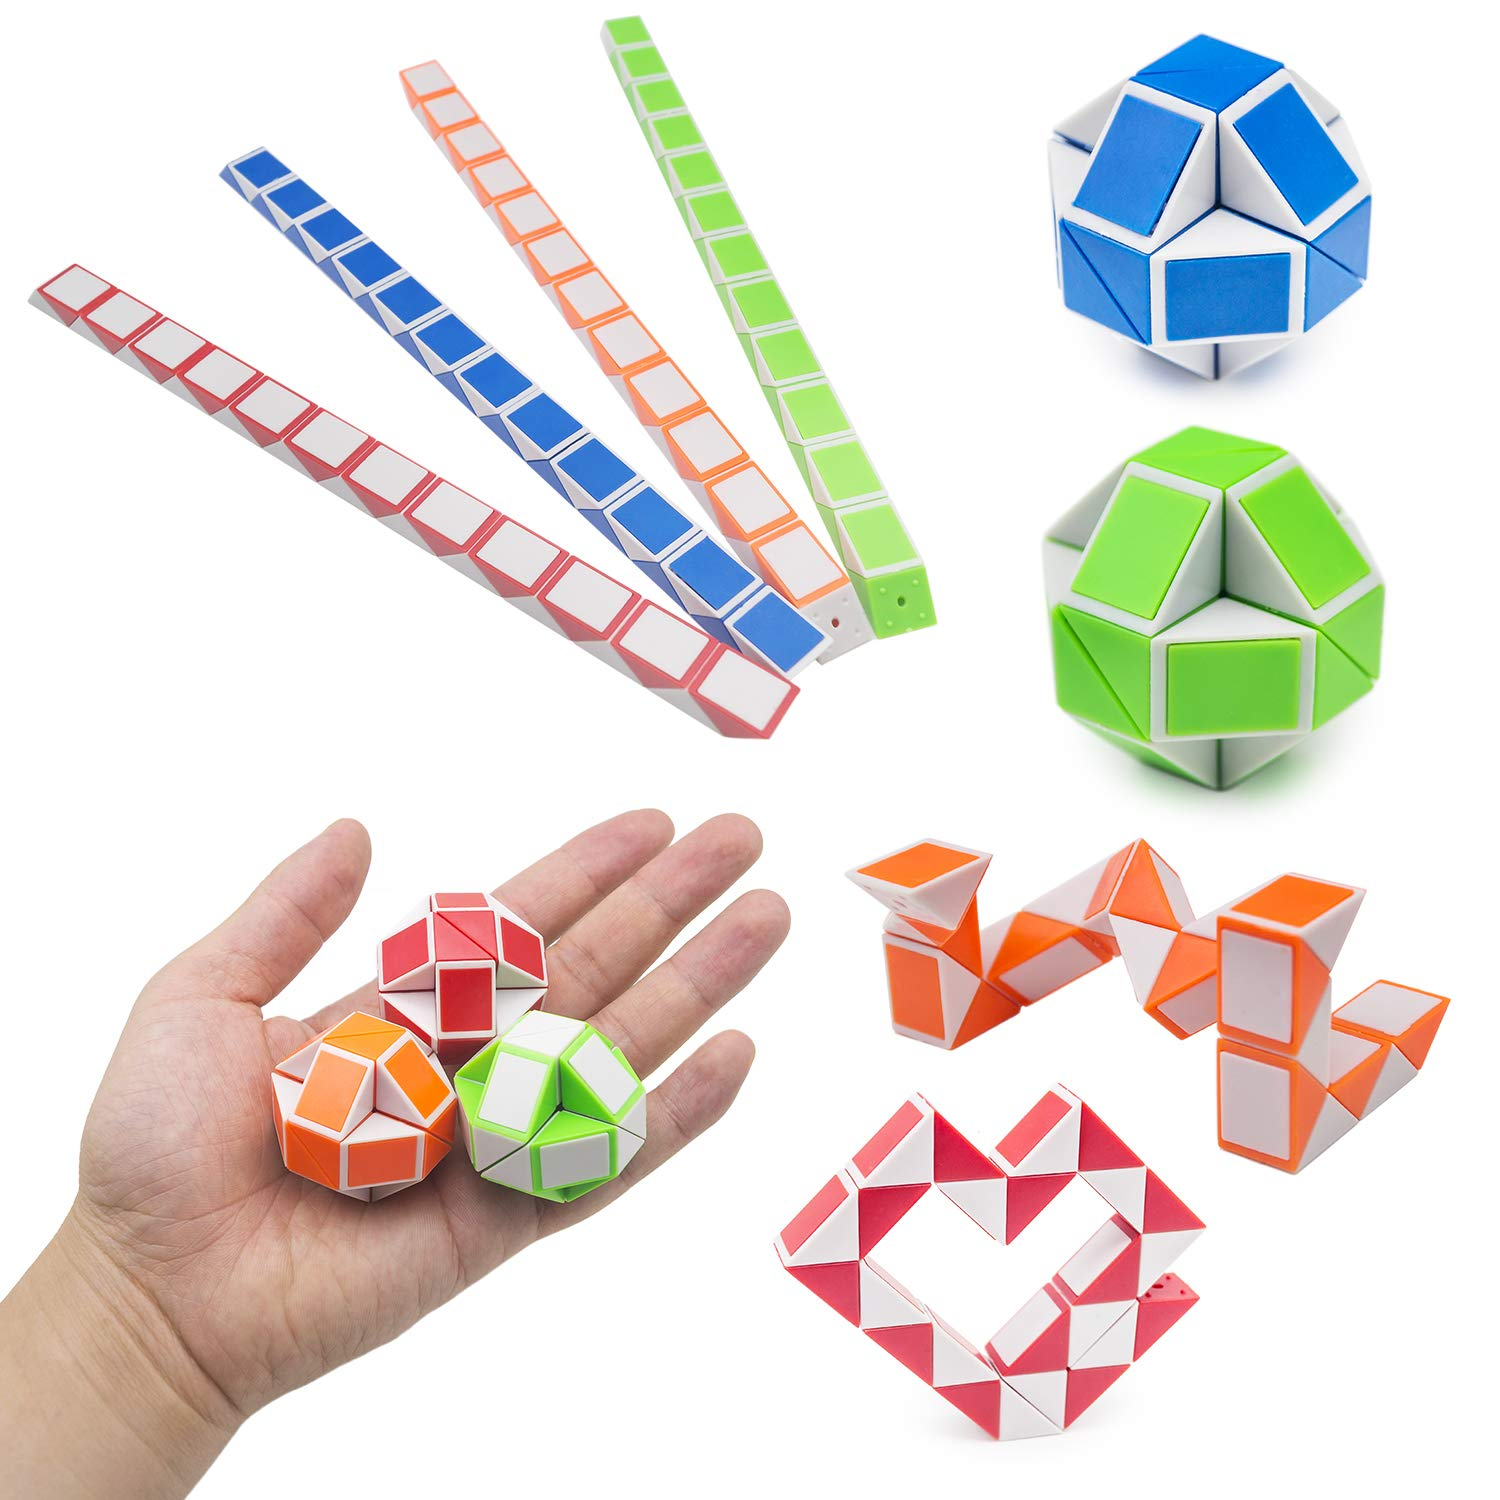 NANAHouse Sensory Toys for Special Needs,Stress Relief Toys Bundle,12 Colors DIY Air Dry Clay,Wood Spinner,Wacky Tracks Snap,Squishies Toy,Snake Twist Puzzles for ADHD ADD Anxiety Autism